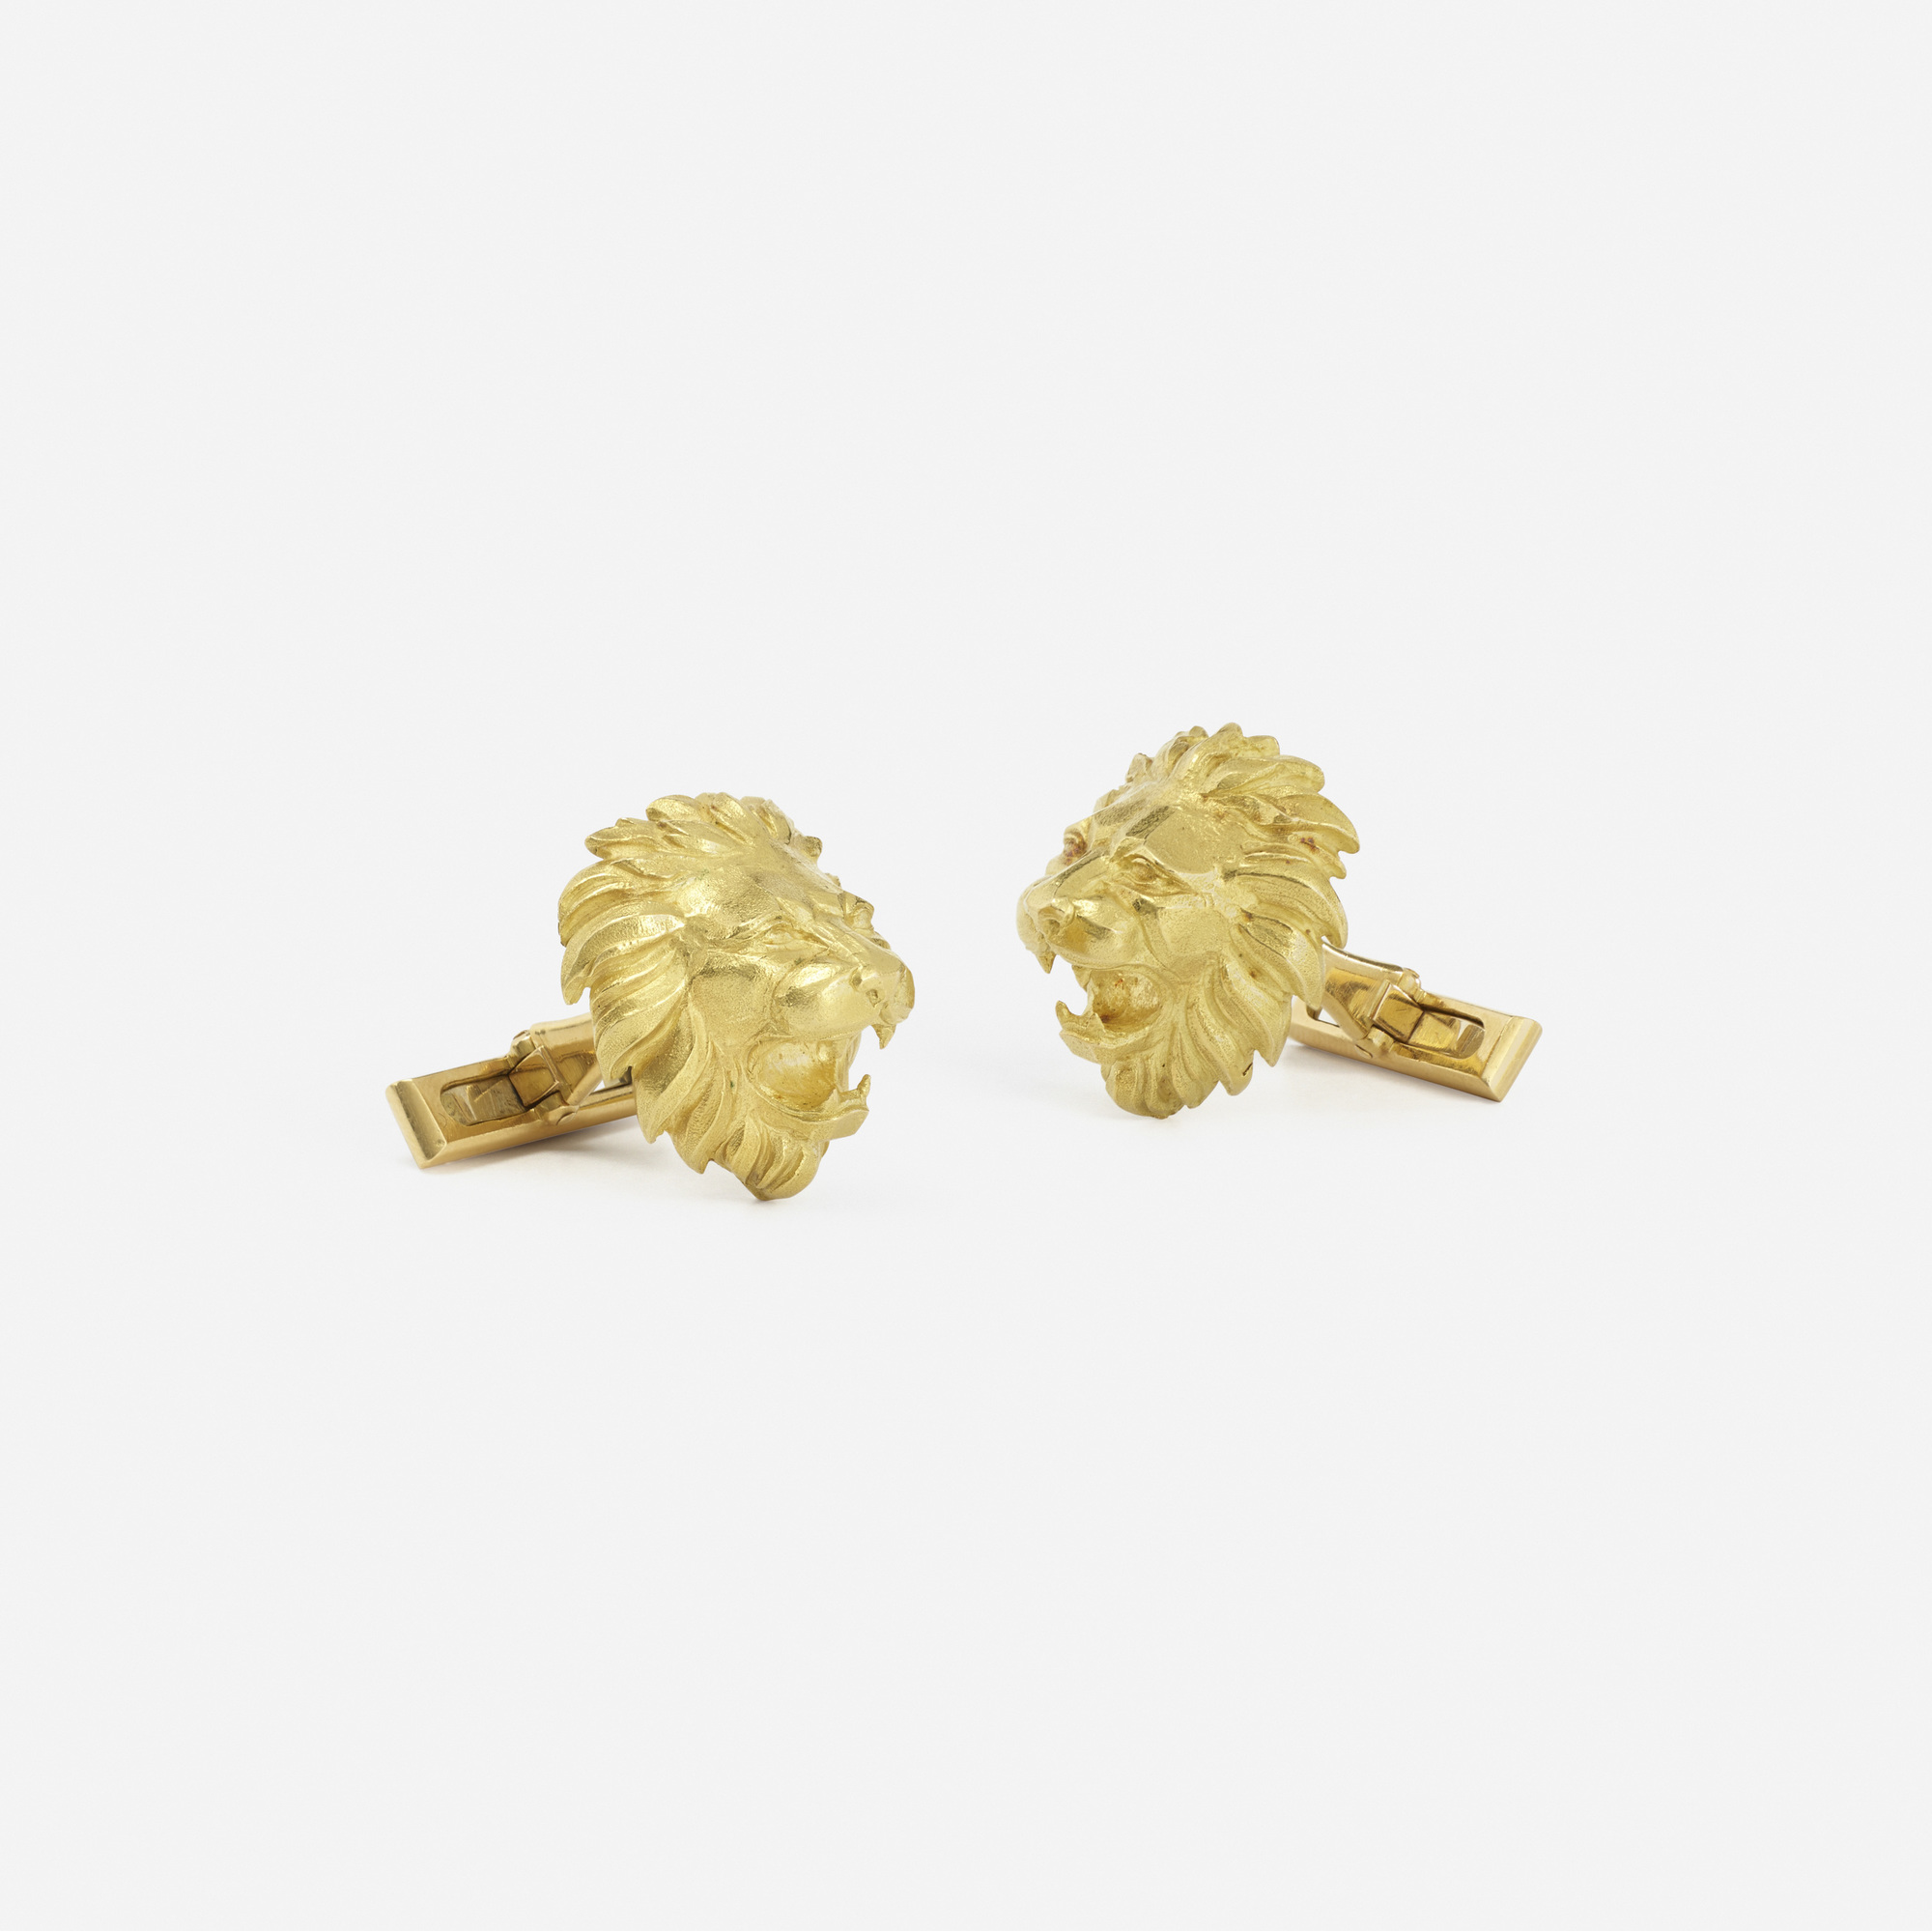 259:  / A pair of gold Lion cufflinks (2 of 2)